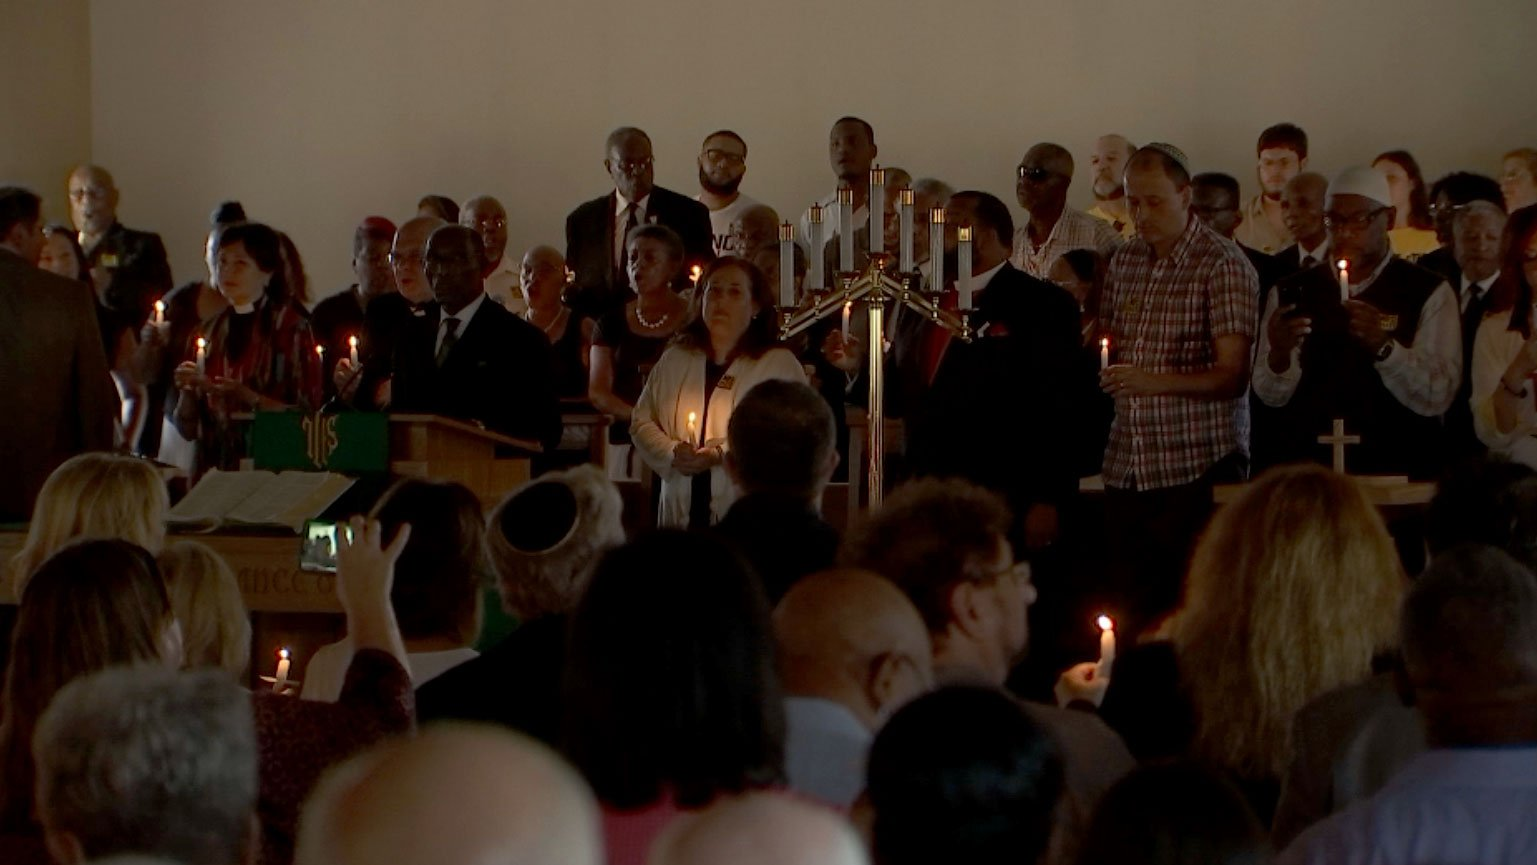 A unity and peace vigil was held on Aug. 21, 2017. (Kathleen Jacob/FOX5)